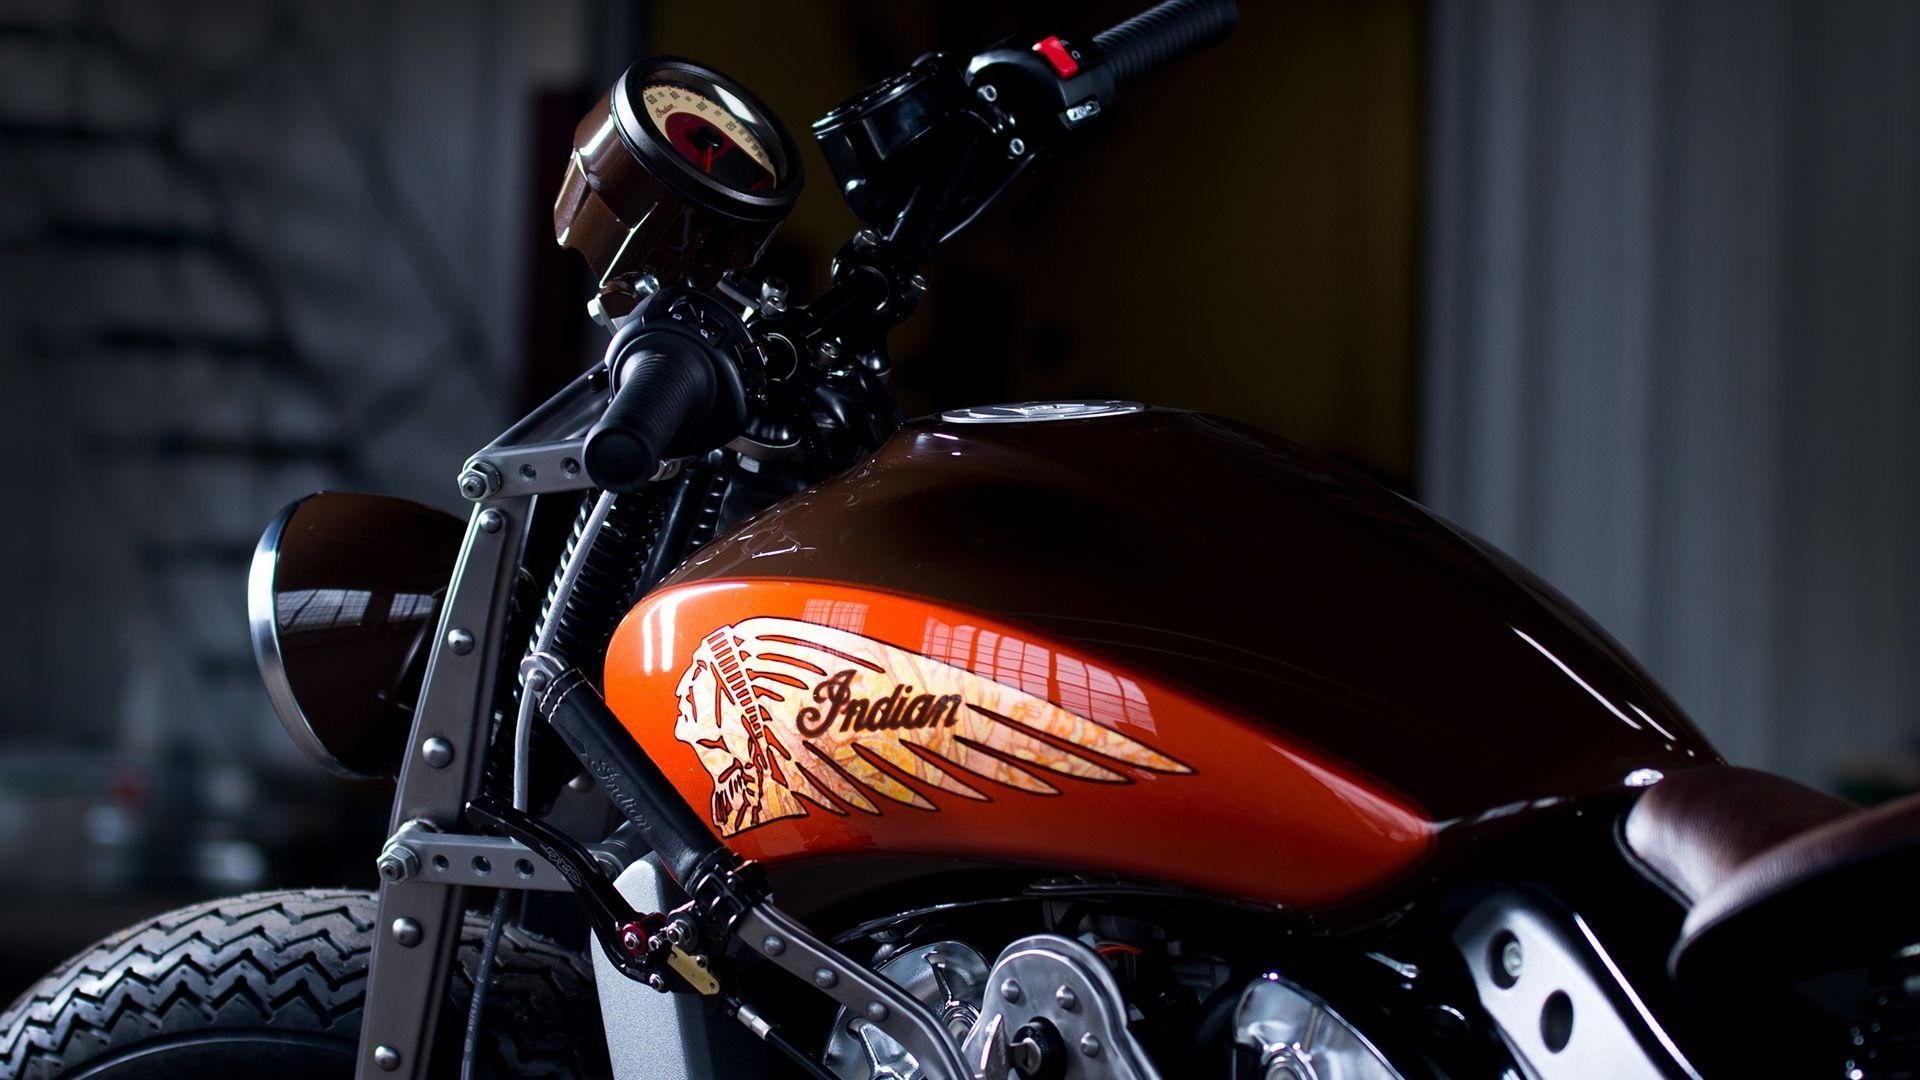 Indian Motorcycle Wallpapers - Wallpaper Cave |Indian Motorcycle Wallpaper